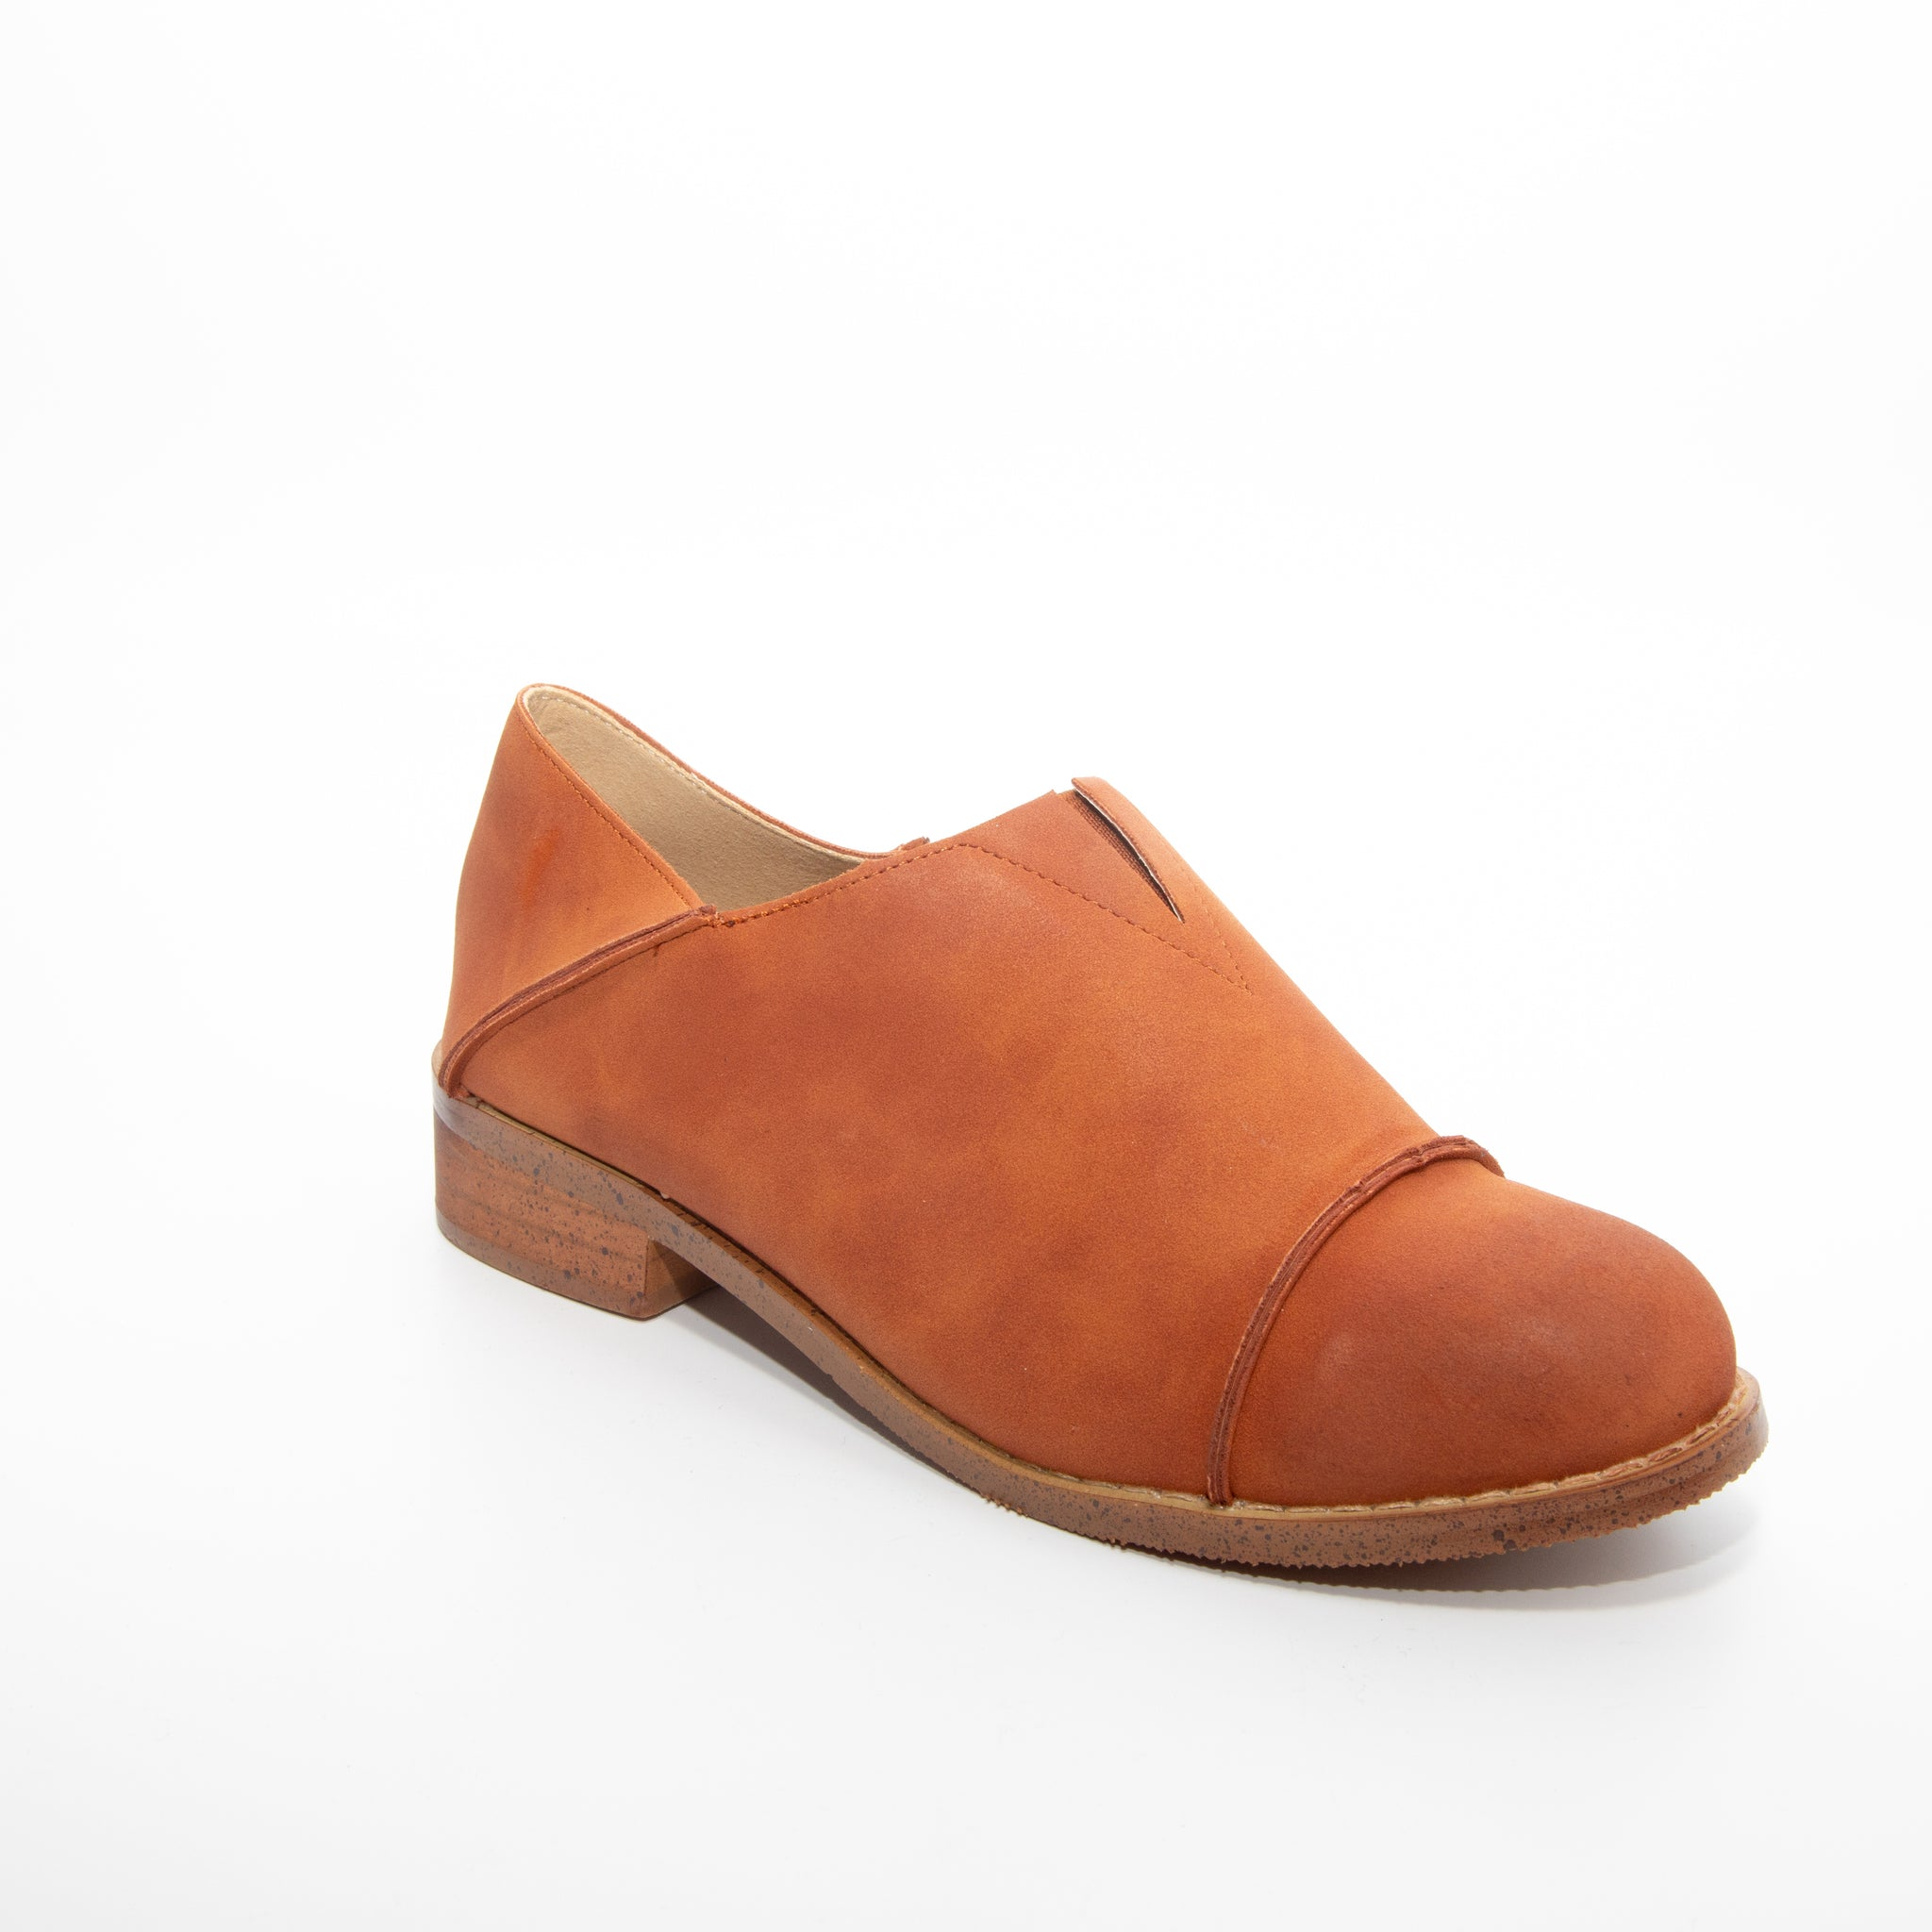 Diva by Dolce Nome | Slip-On Oxford Loafers in Rust (main view)